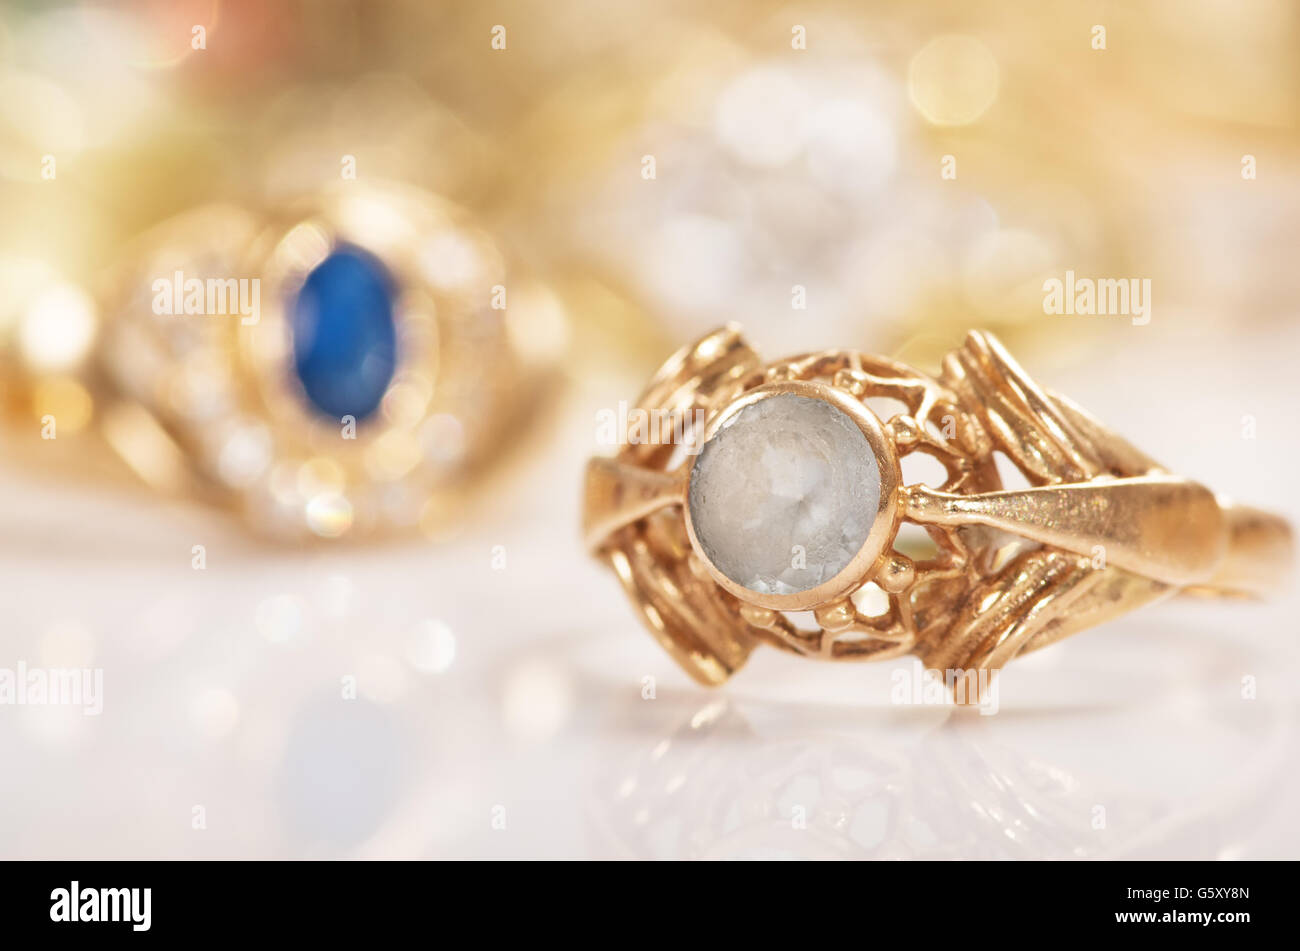 Gold jewelry on a white background. - Stock Image